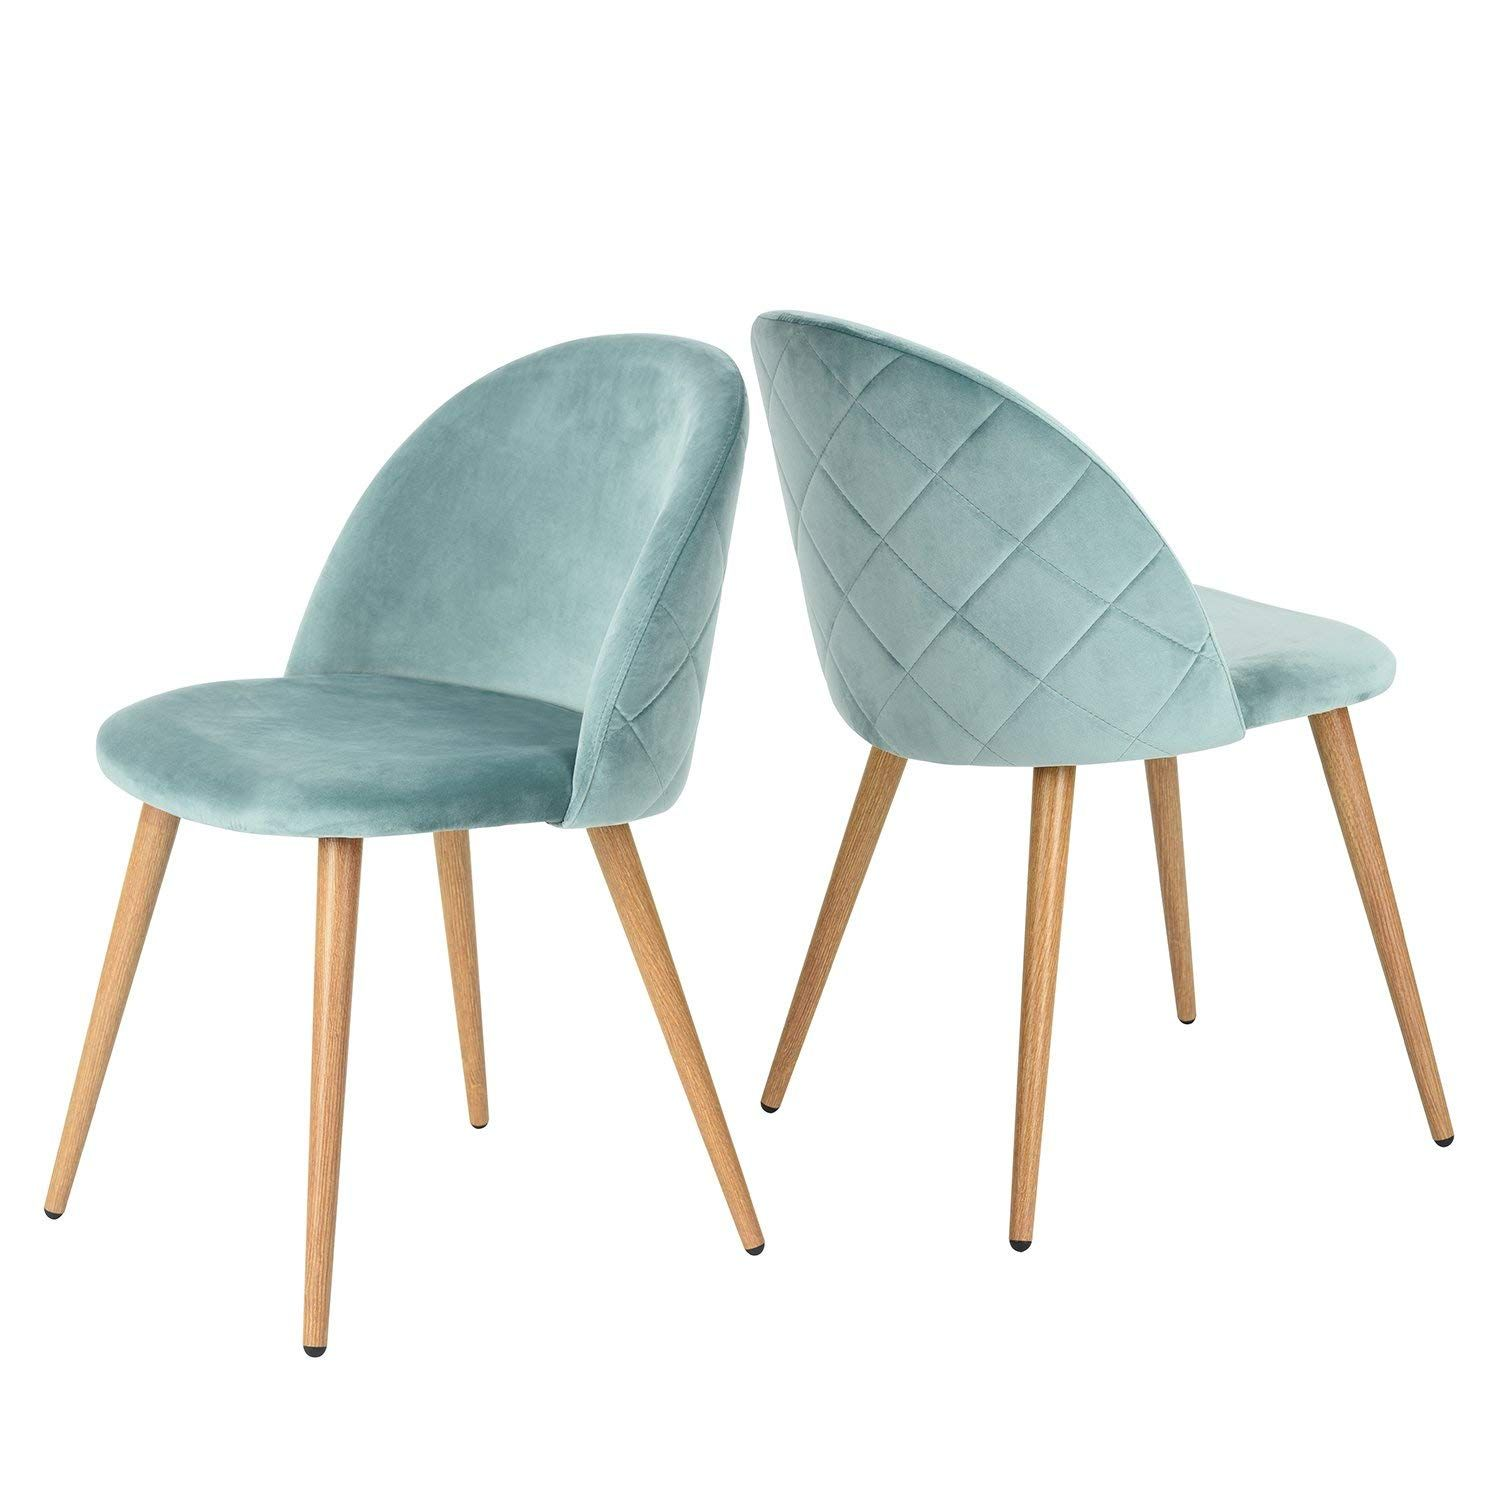 P N Homewares Moda Dining Chair Plastic Wood Retro Dining Chairs